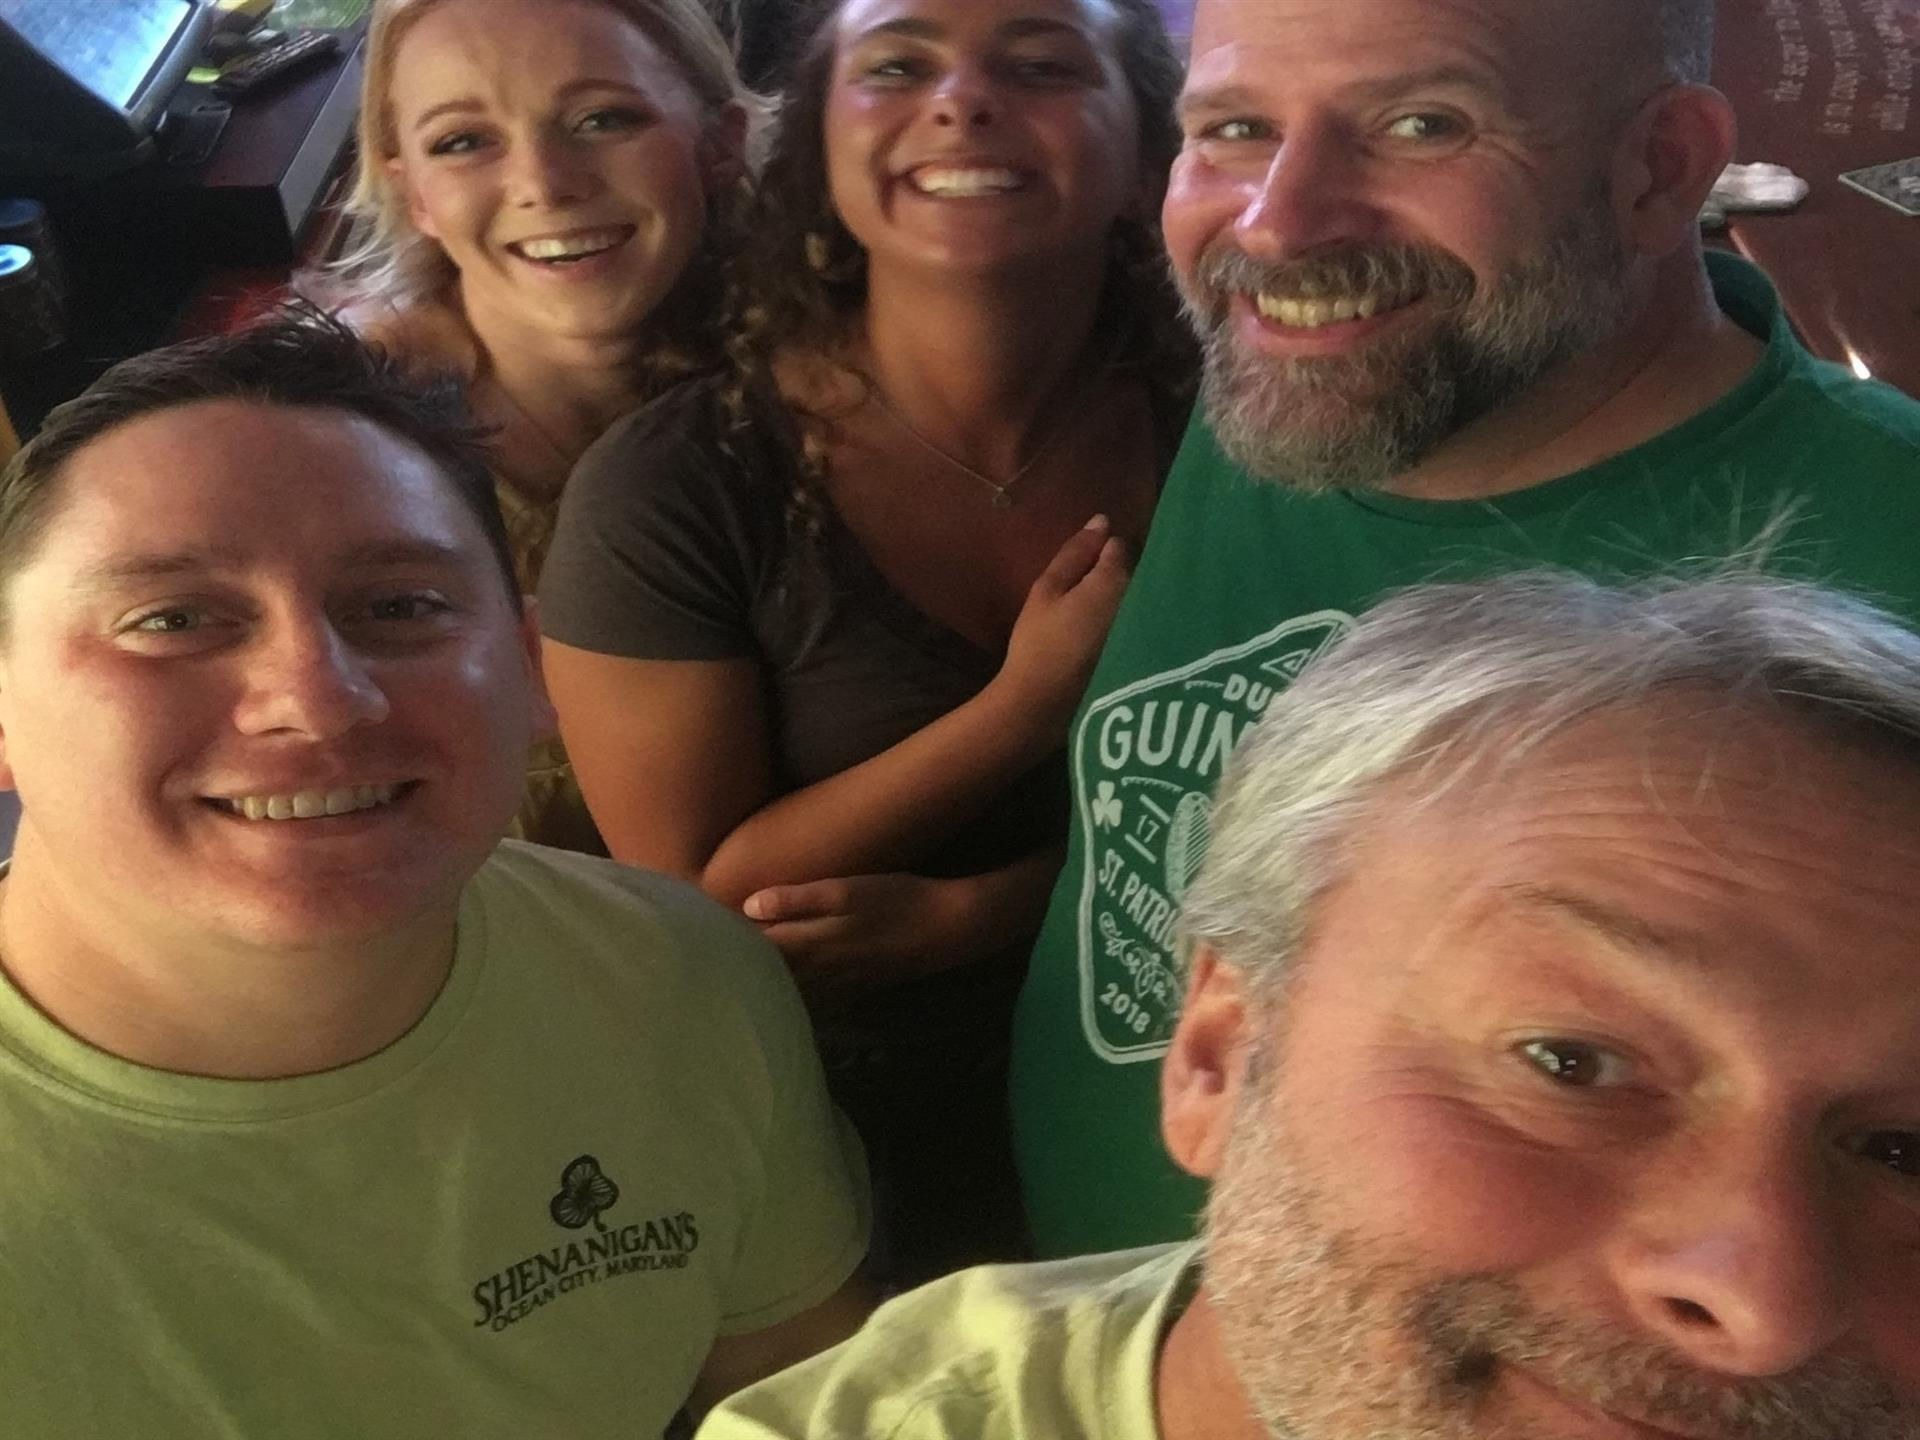 Five Shenenigan's staff members smiling and taking a selfie.